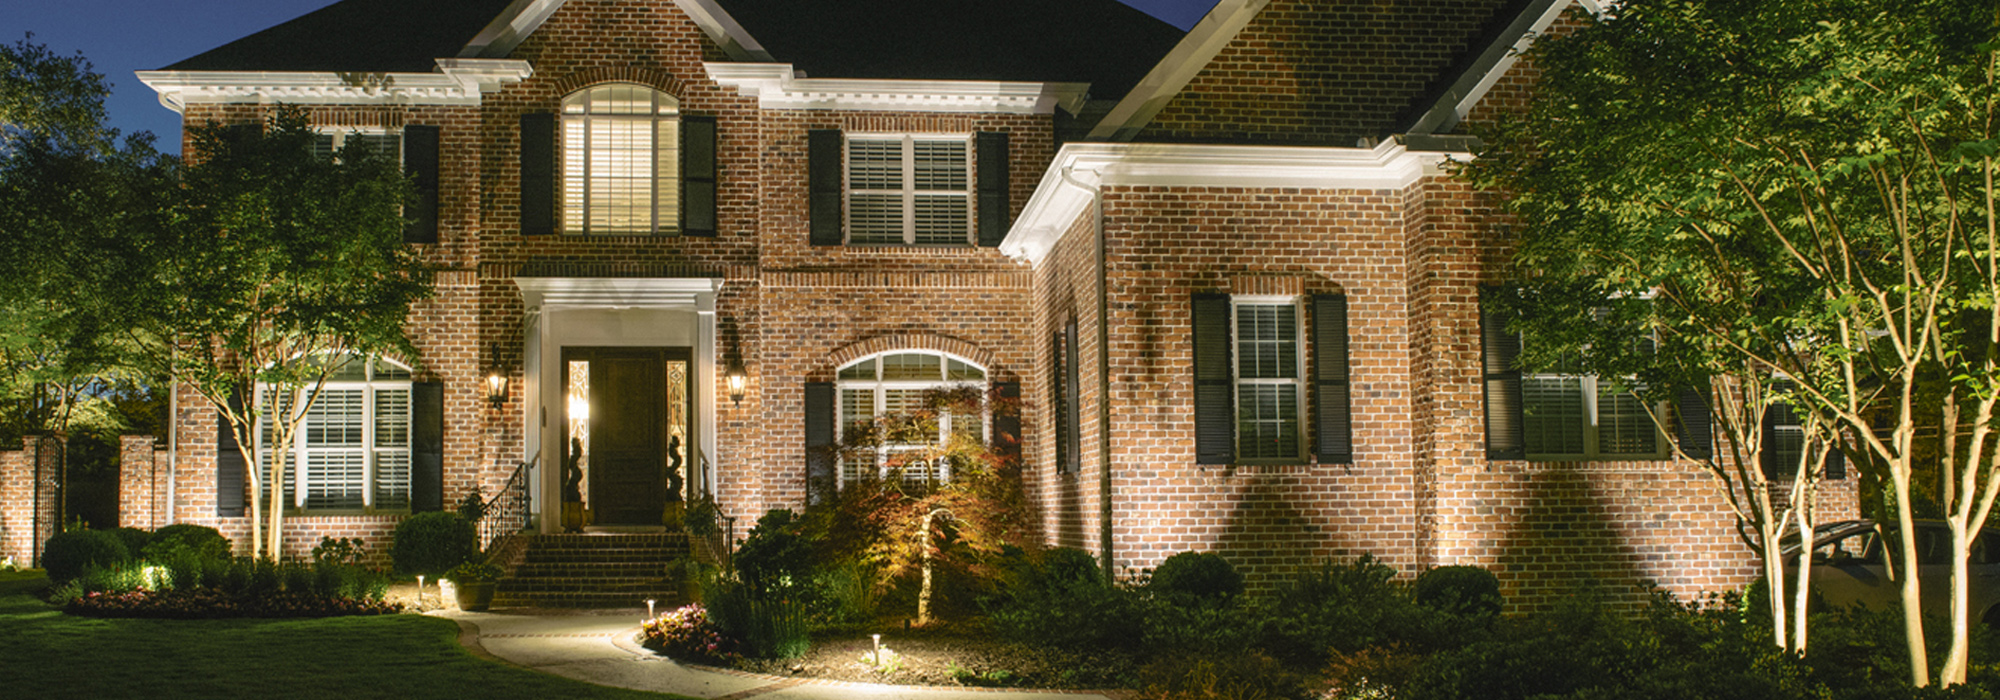 Residential outdoor lighting we offer the best quality lights custom lighting design by outdoor lighting experts meticulous installation and ongoing service and maintenance arubaitofo Image collections